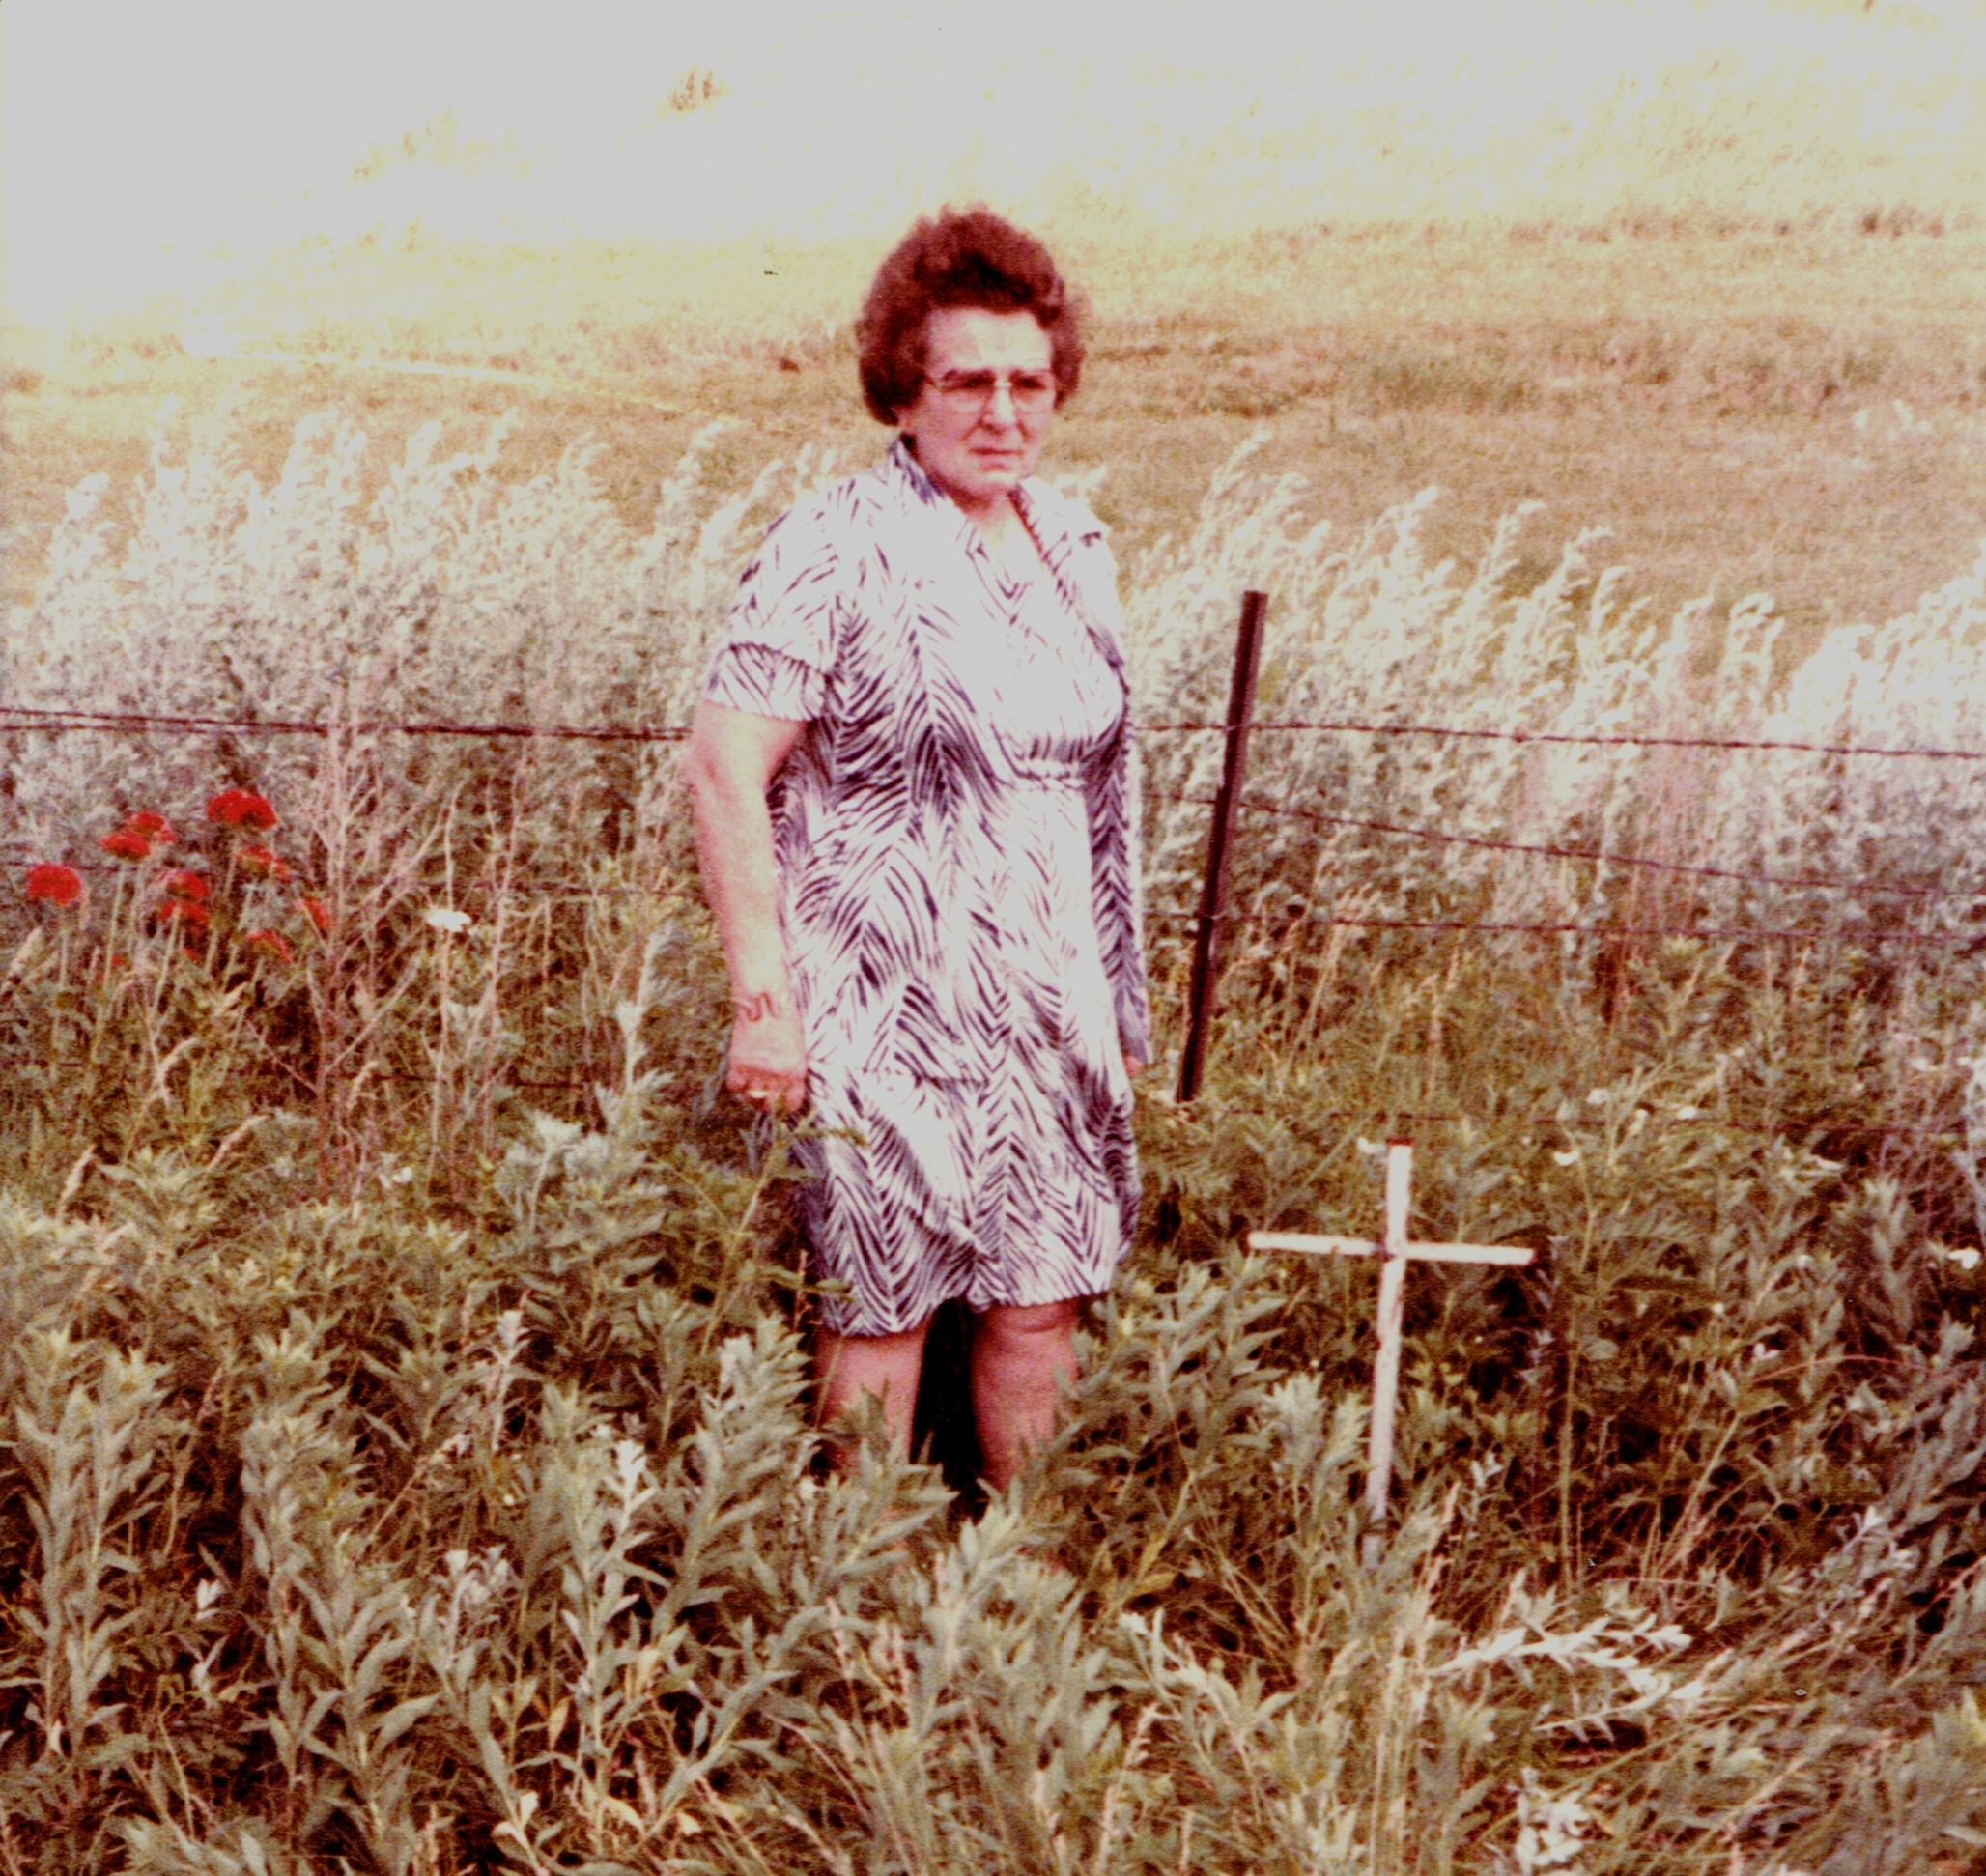 Martha Salway at Karl Helms gravesite